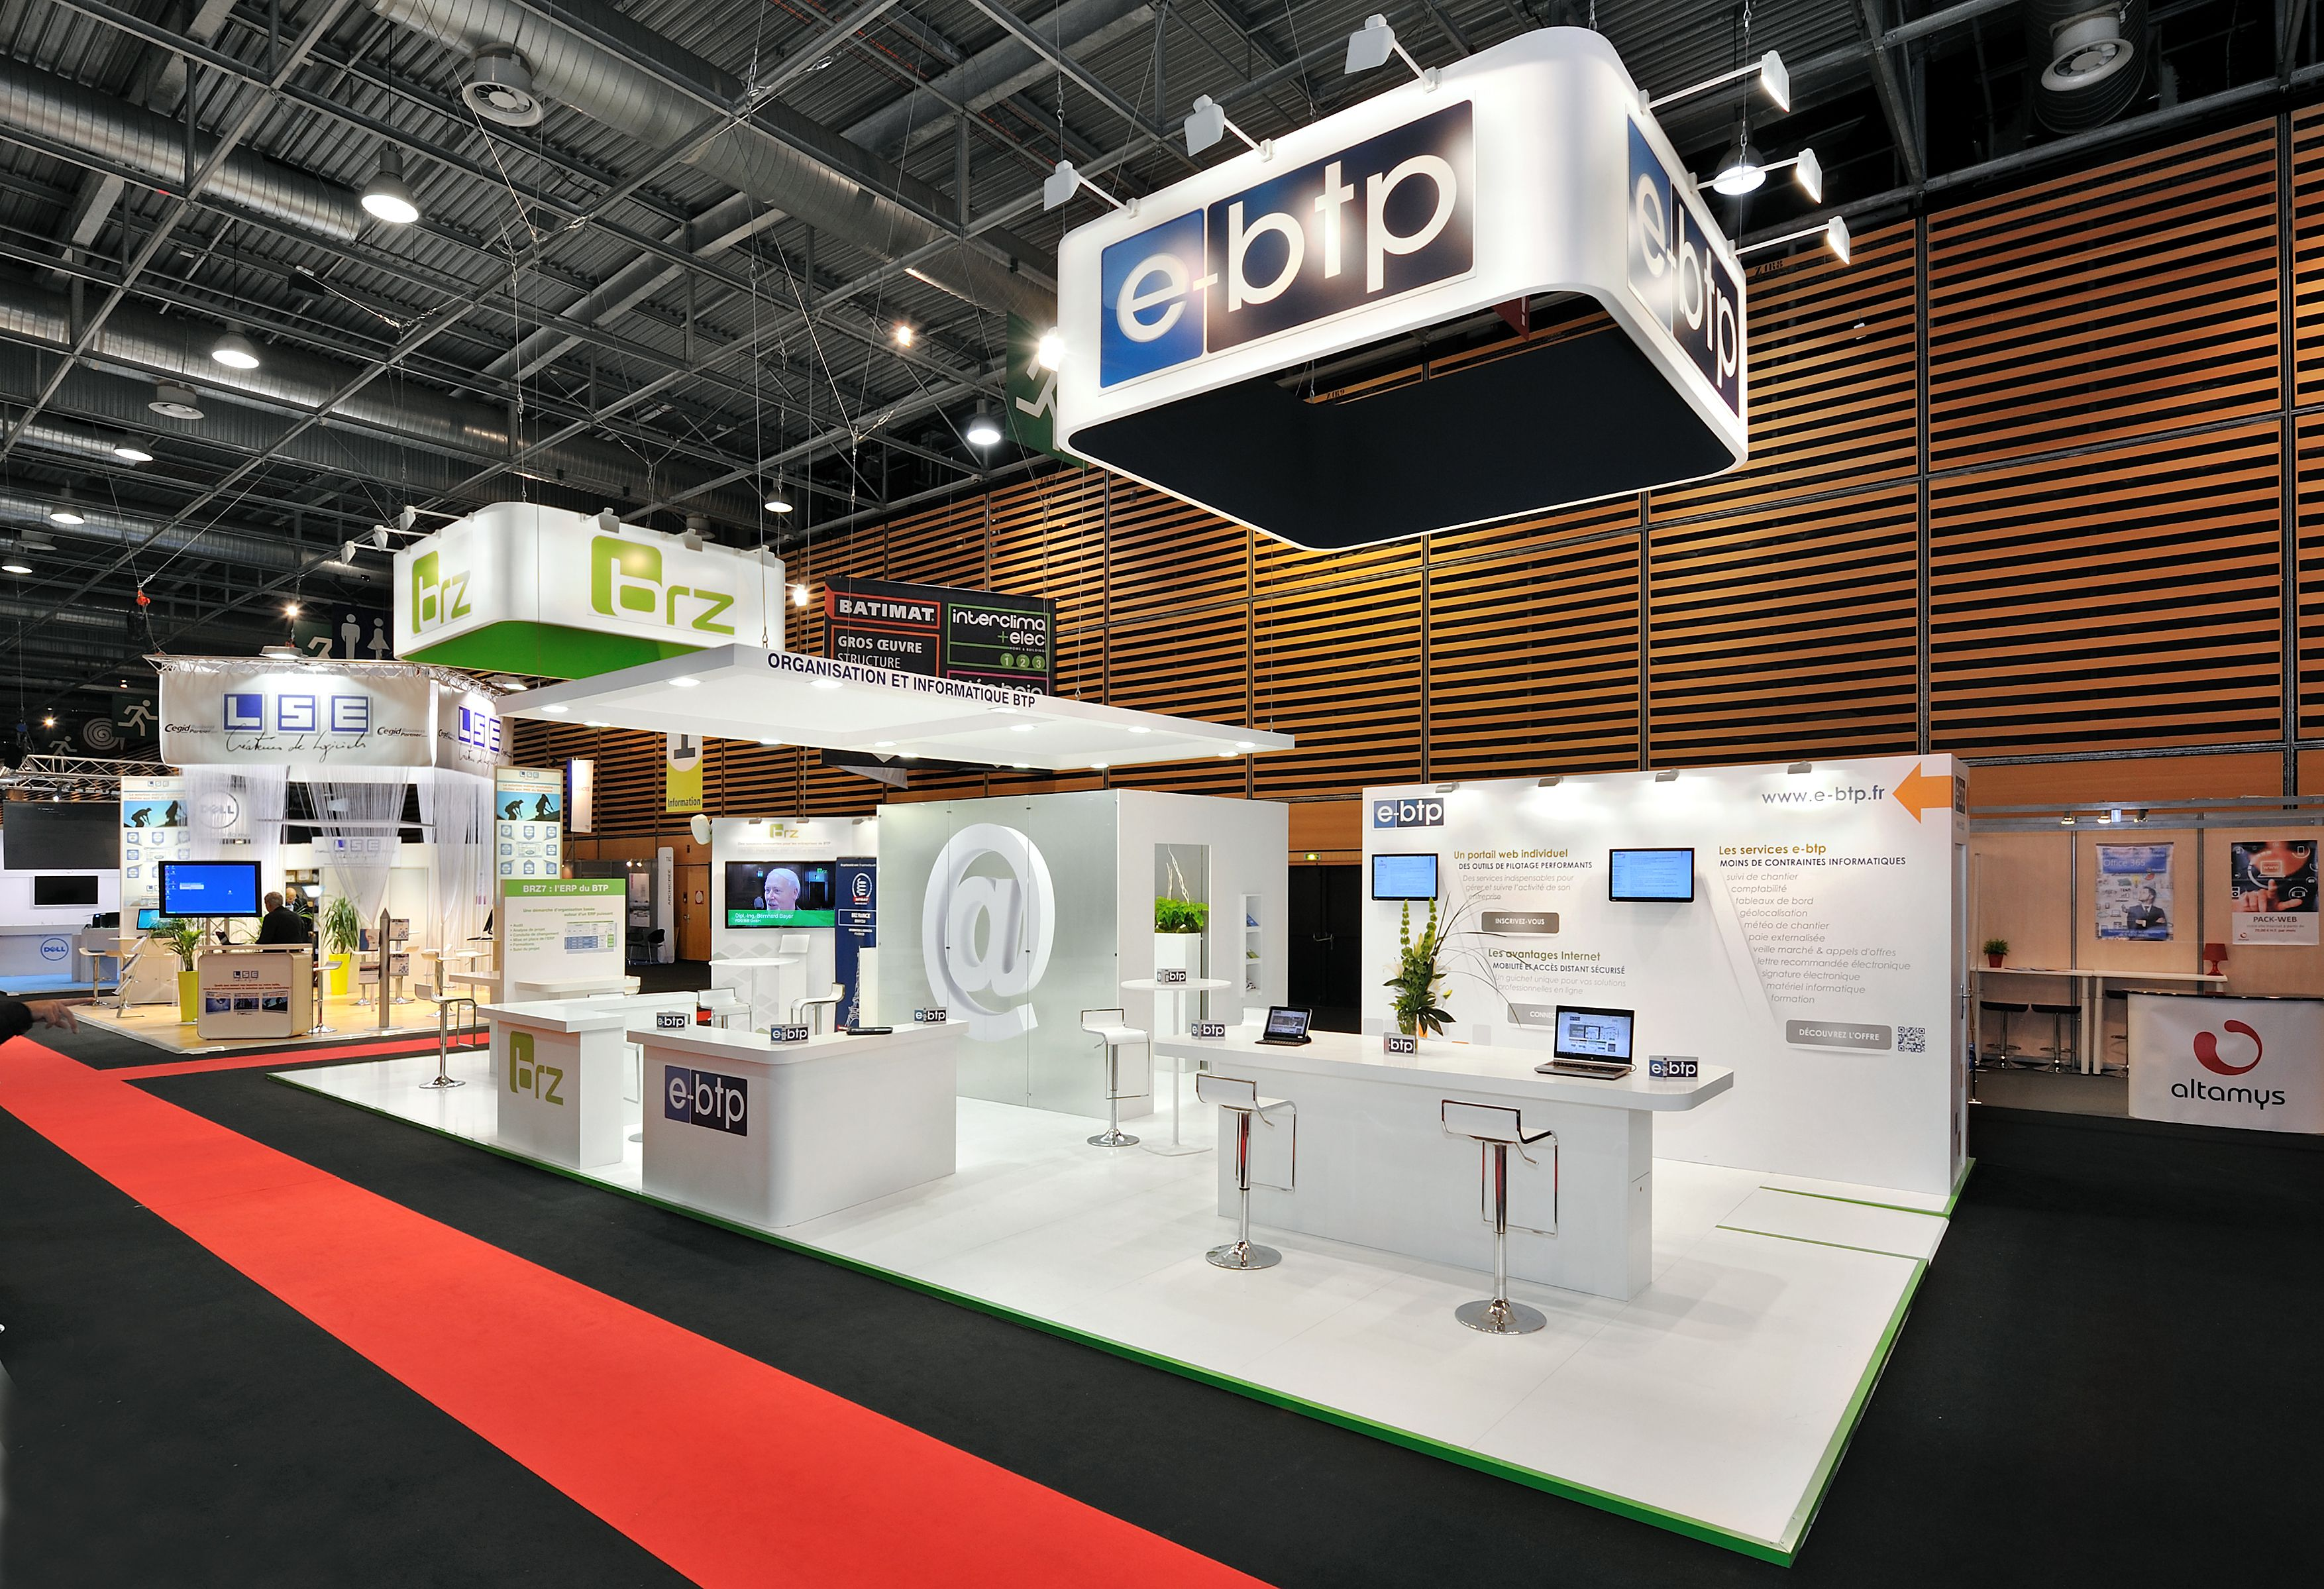 Salon Batimat Salon Batimat Designdelevenement Stand Design 展示设计